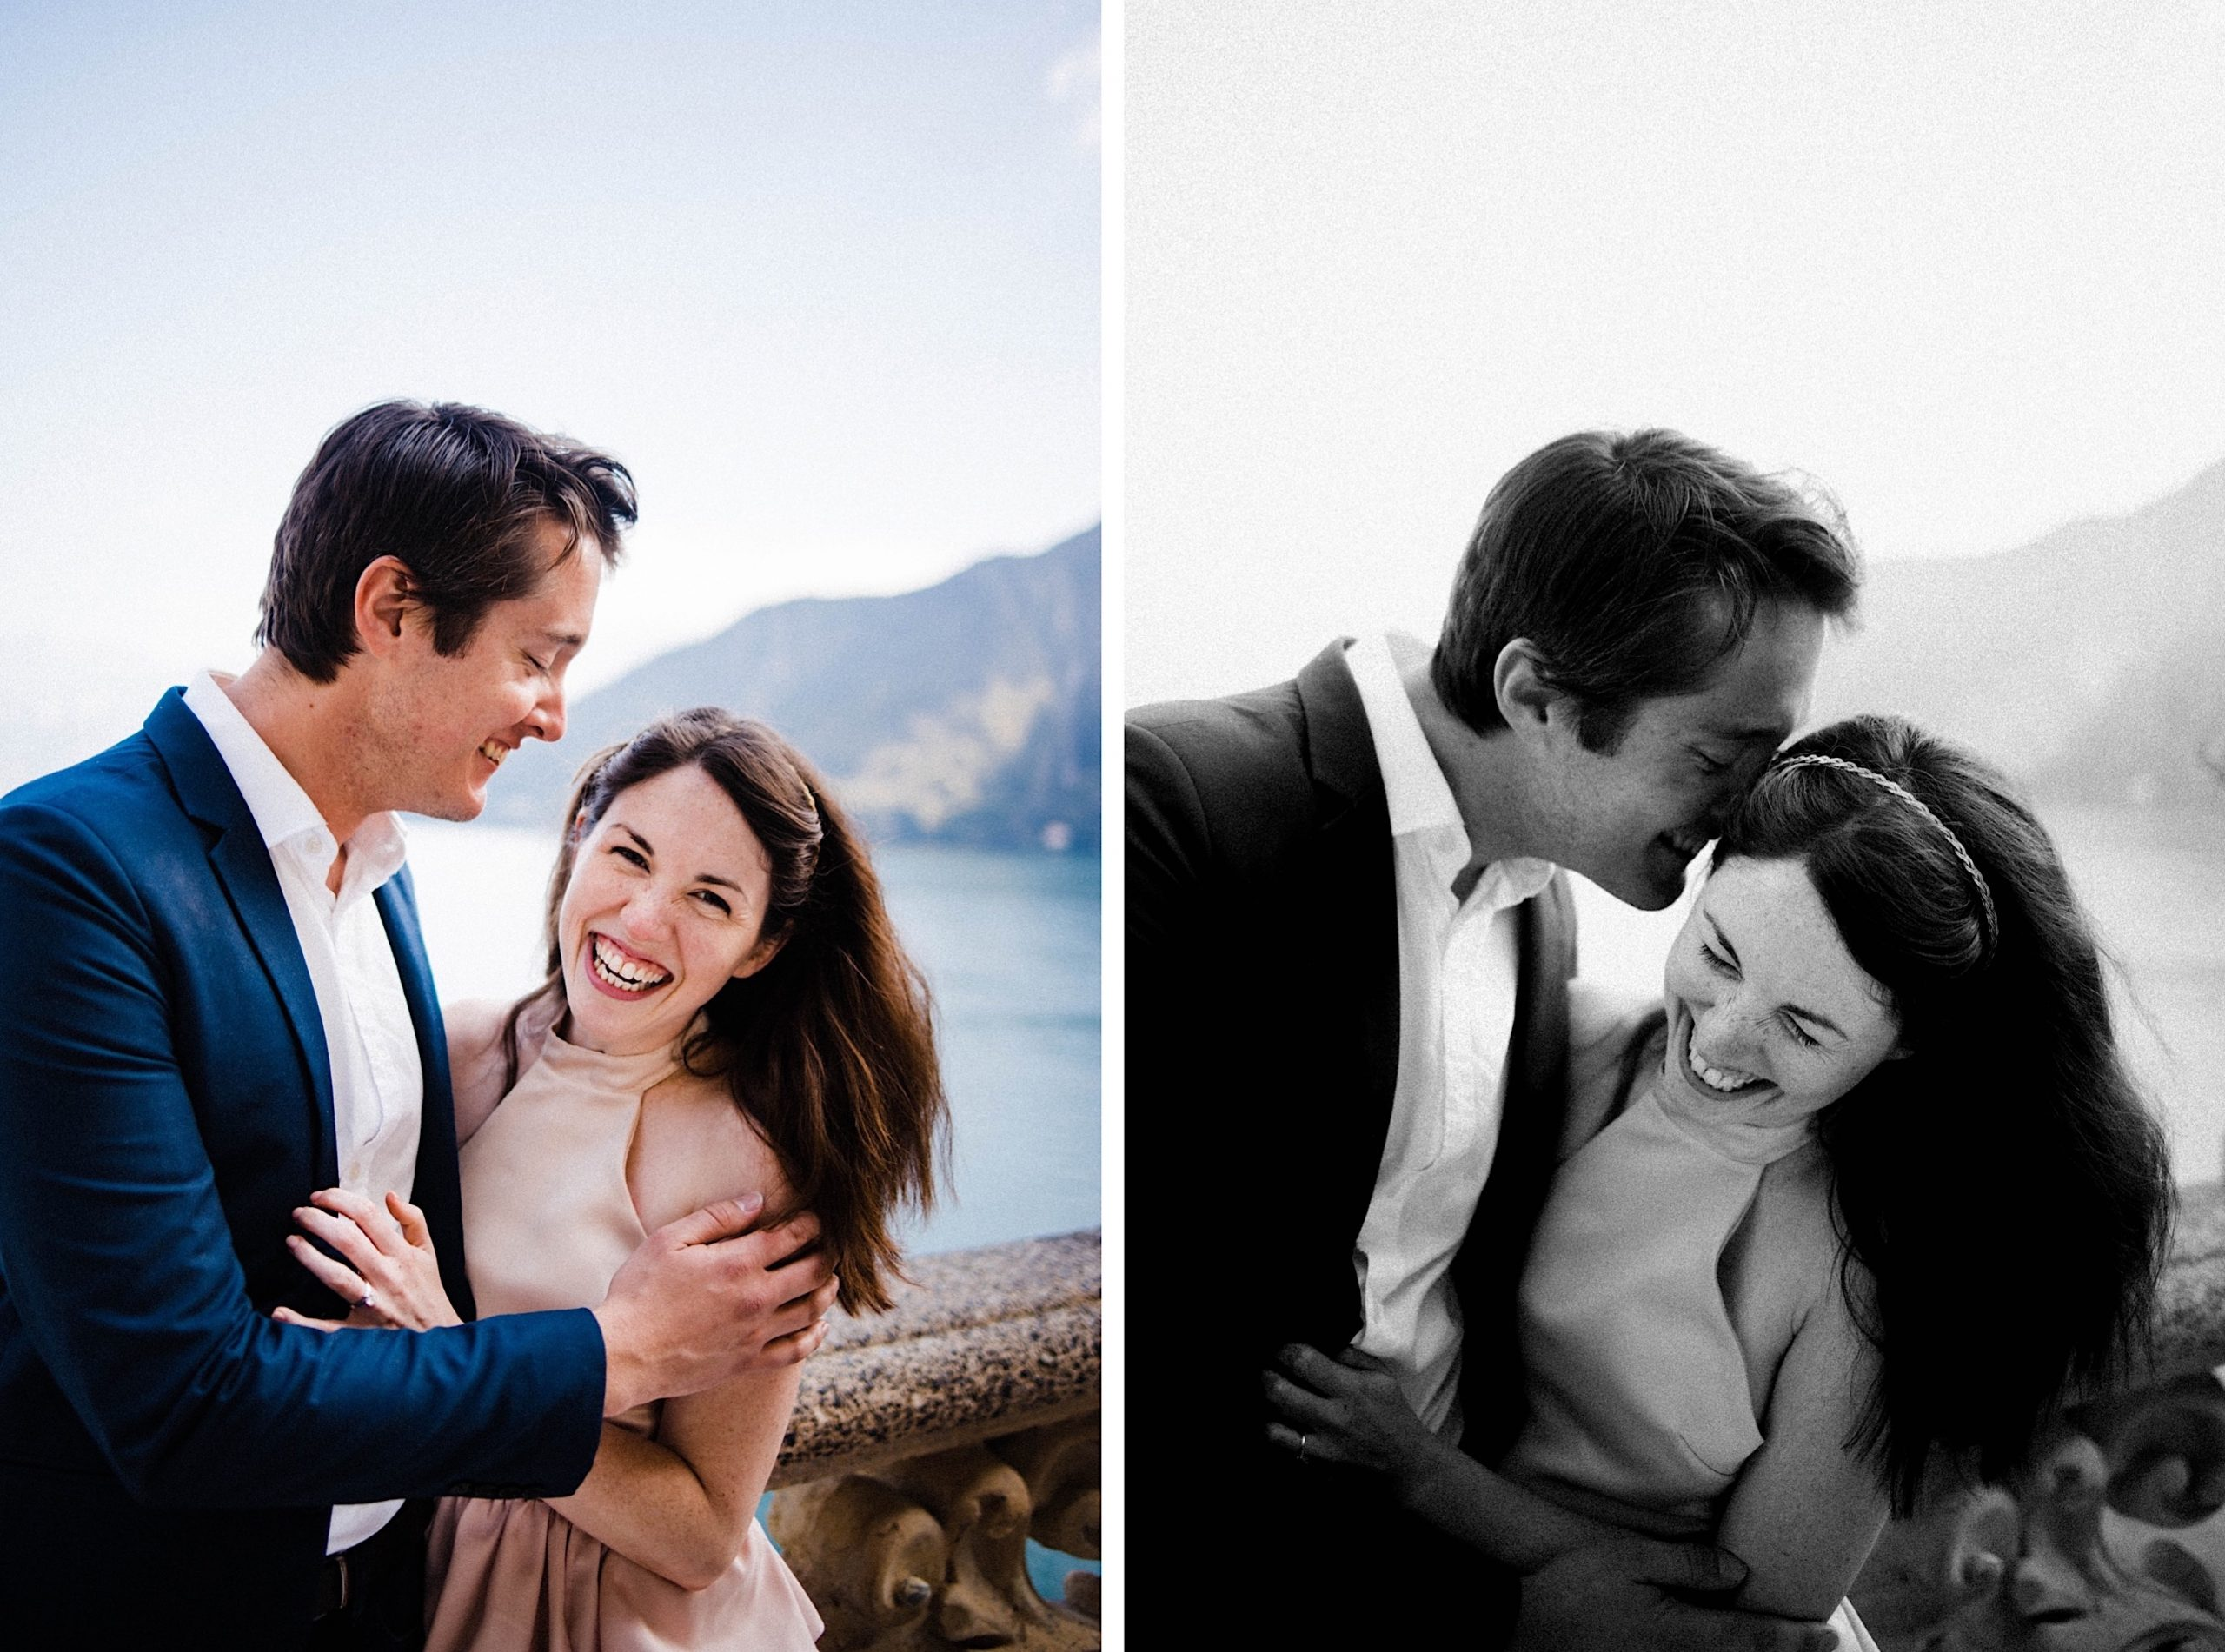 Two portrait images - on the left, a colour photo of a couple stand together laughing with a lake in the background, on the right, a black & white image of the couple in the same spot while he kisses her forehead.